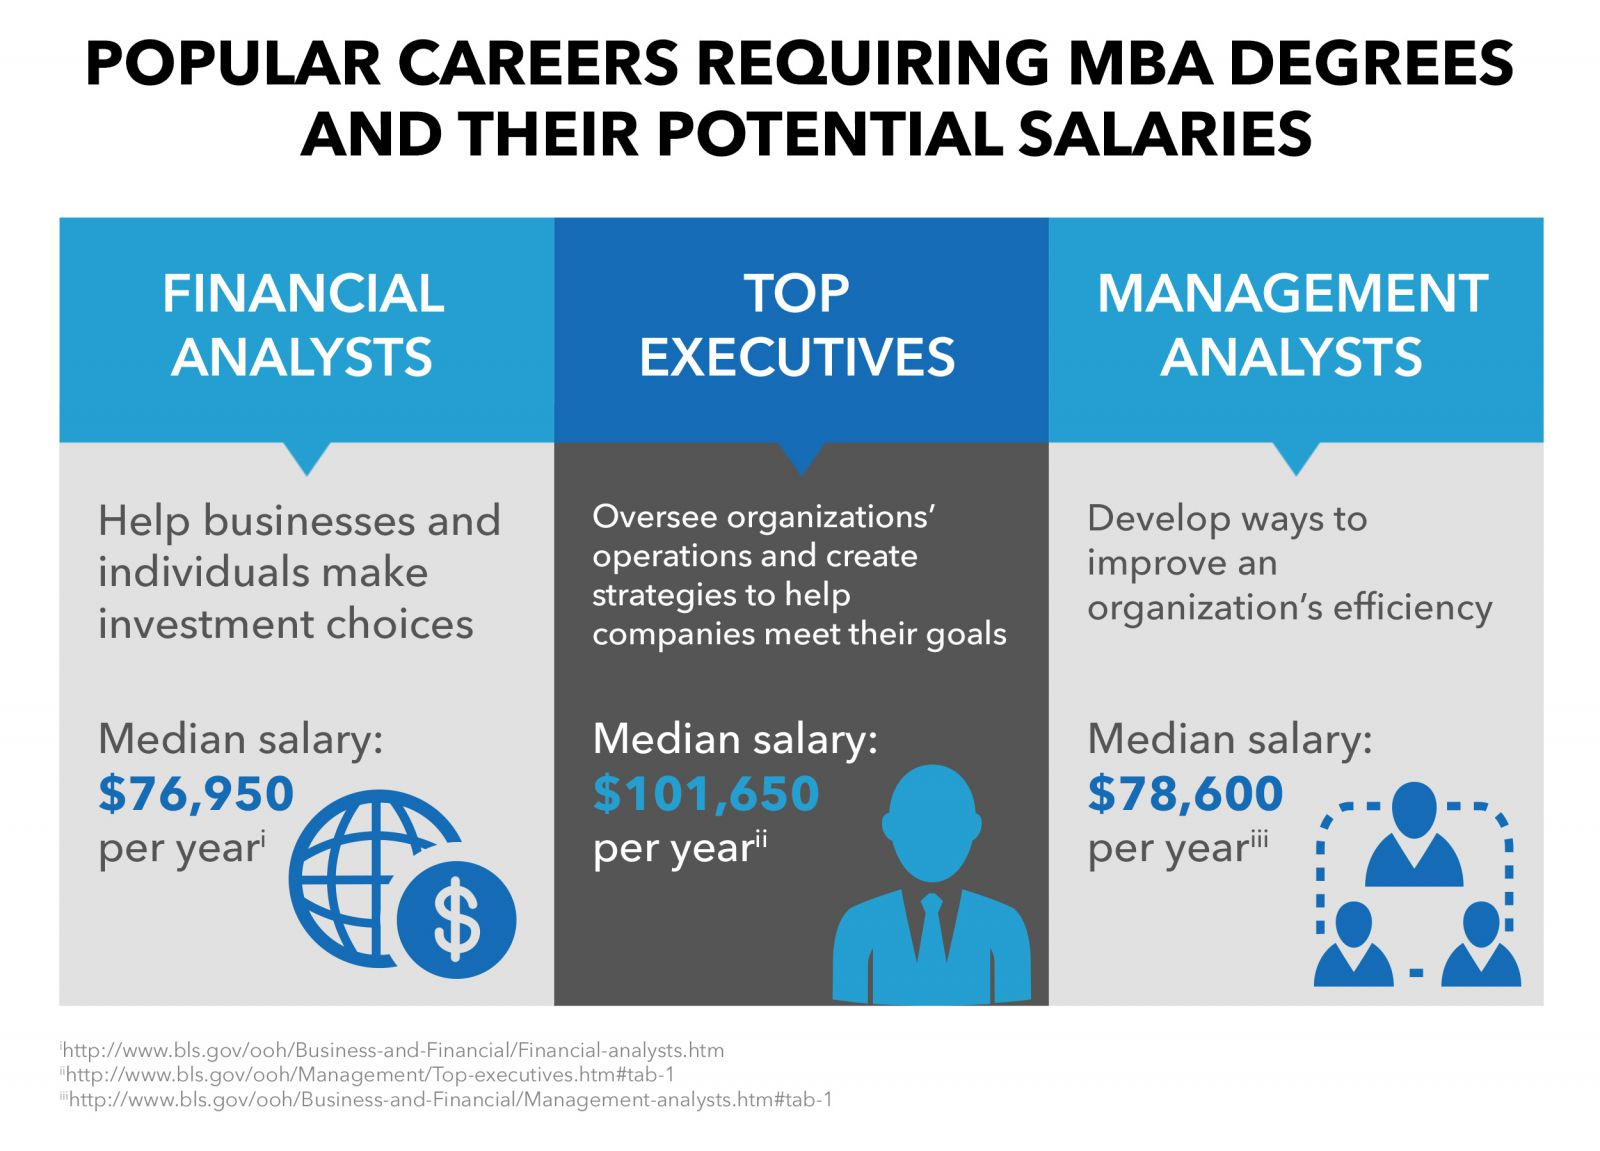 jobs that require an mba